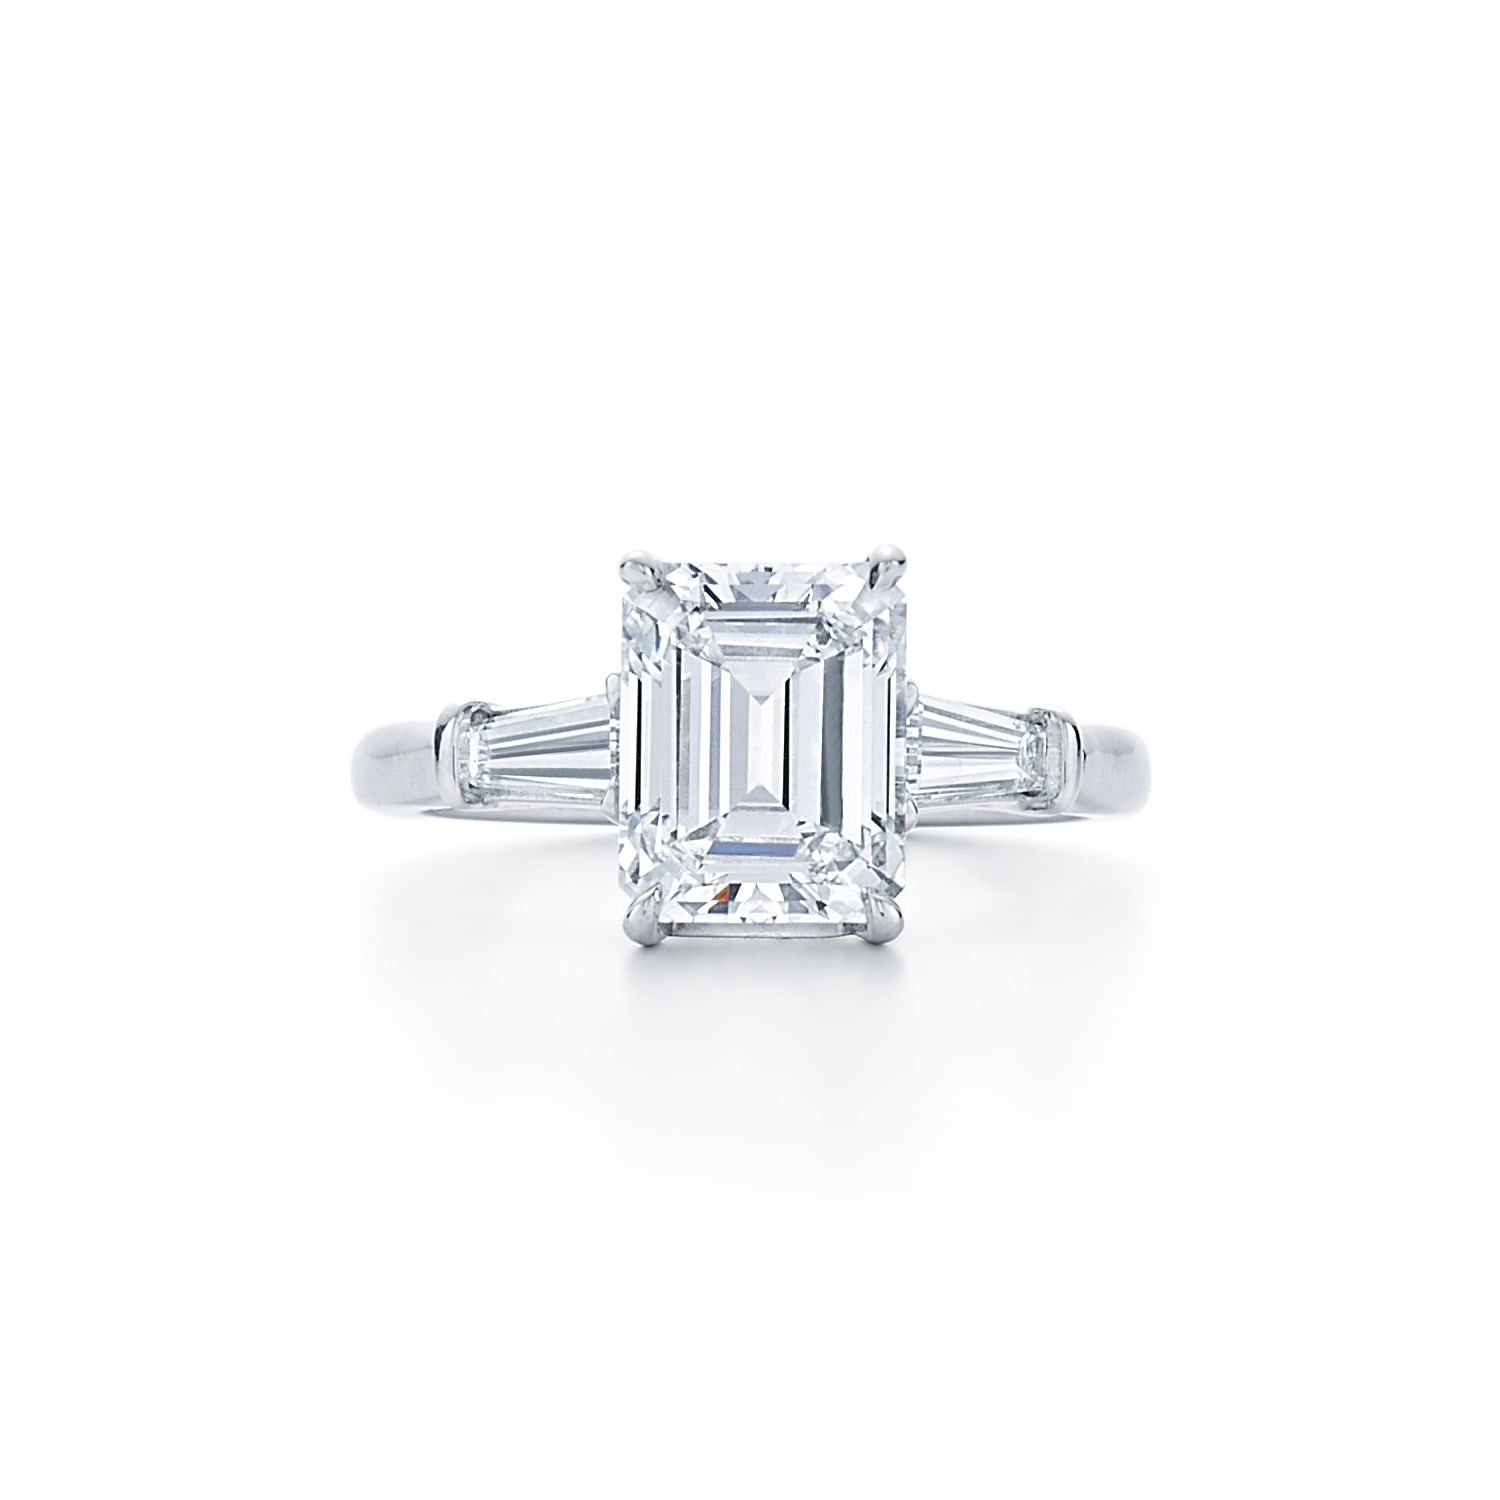 crop emerald cut diamond shop harry engagement scale false upscale subsampling product ring kotlar rings classico the